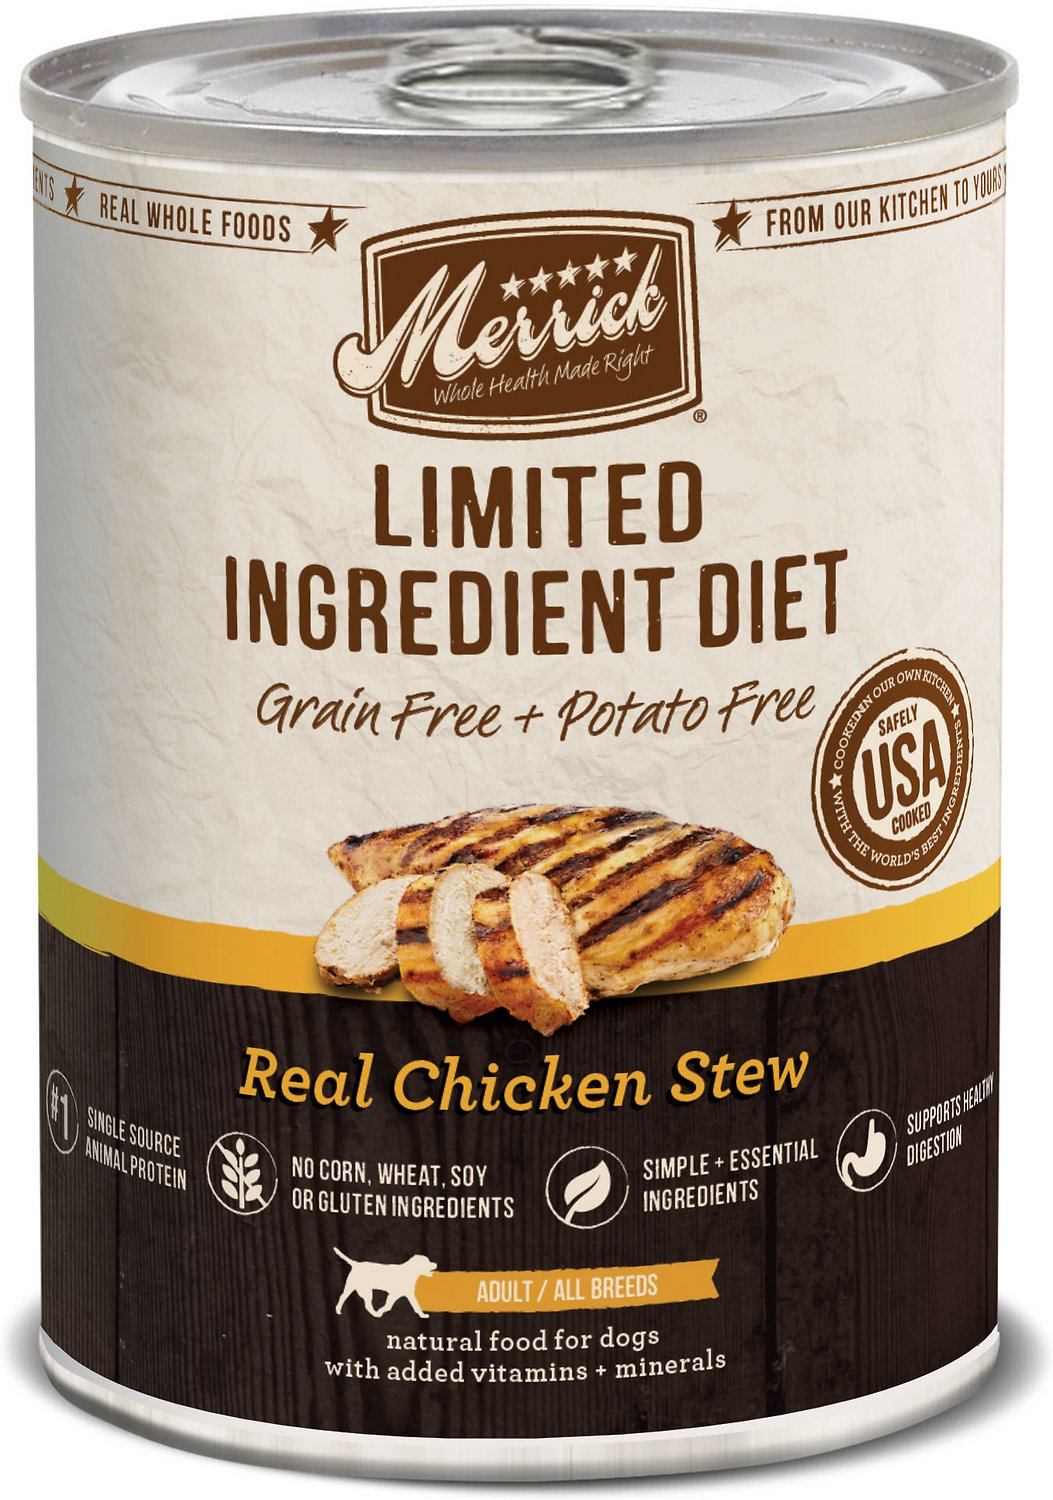 Merrick Limited Ingredient Diet Grain-Free Real Chicken Stew Canned Dog Food Image